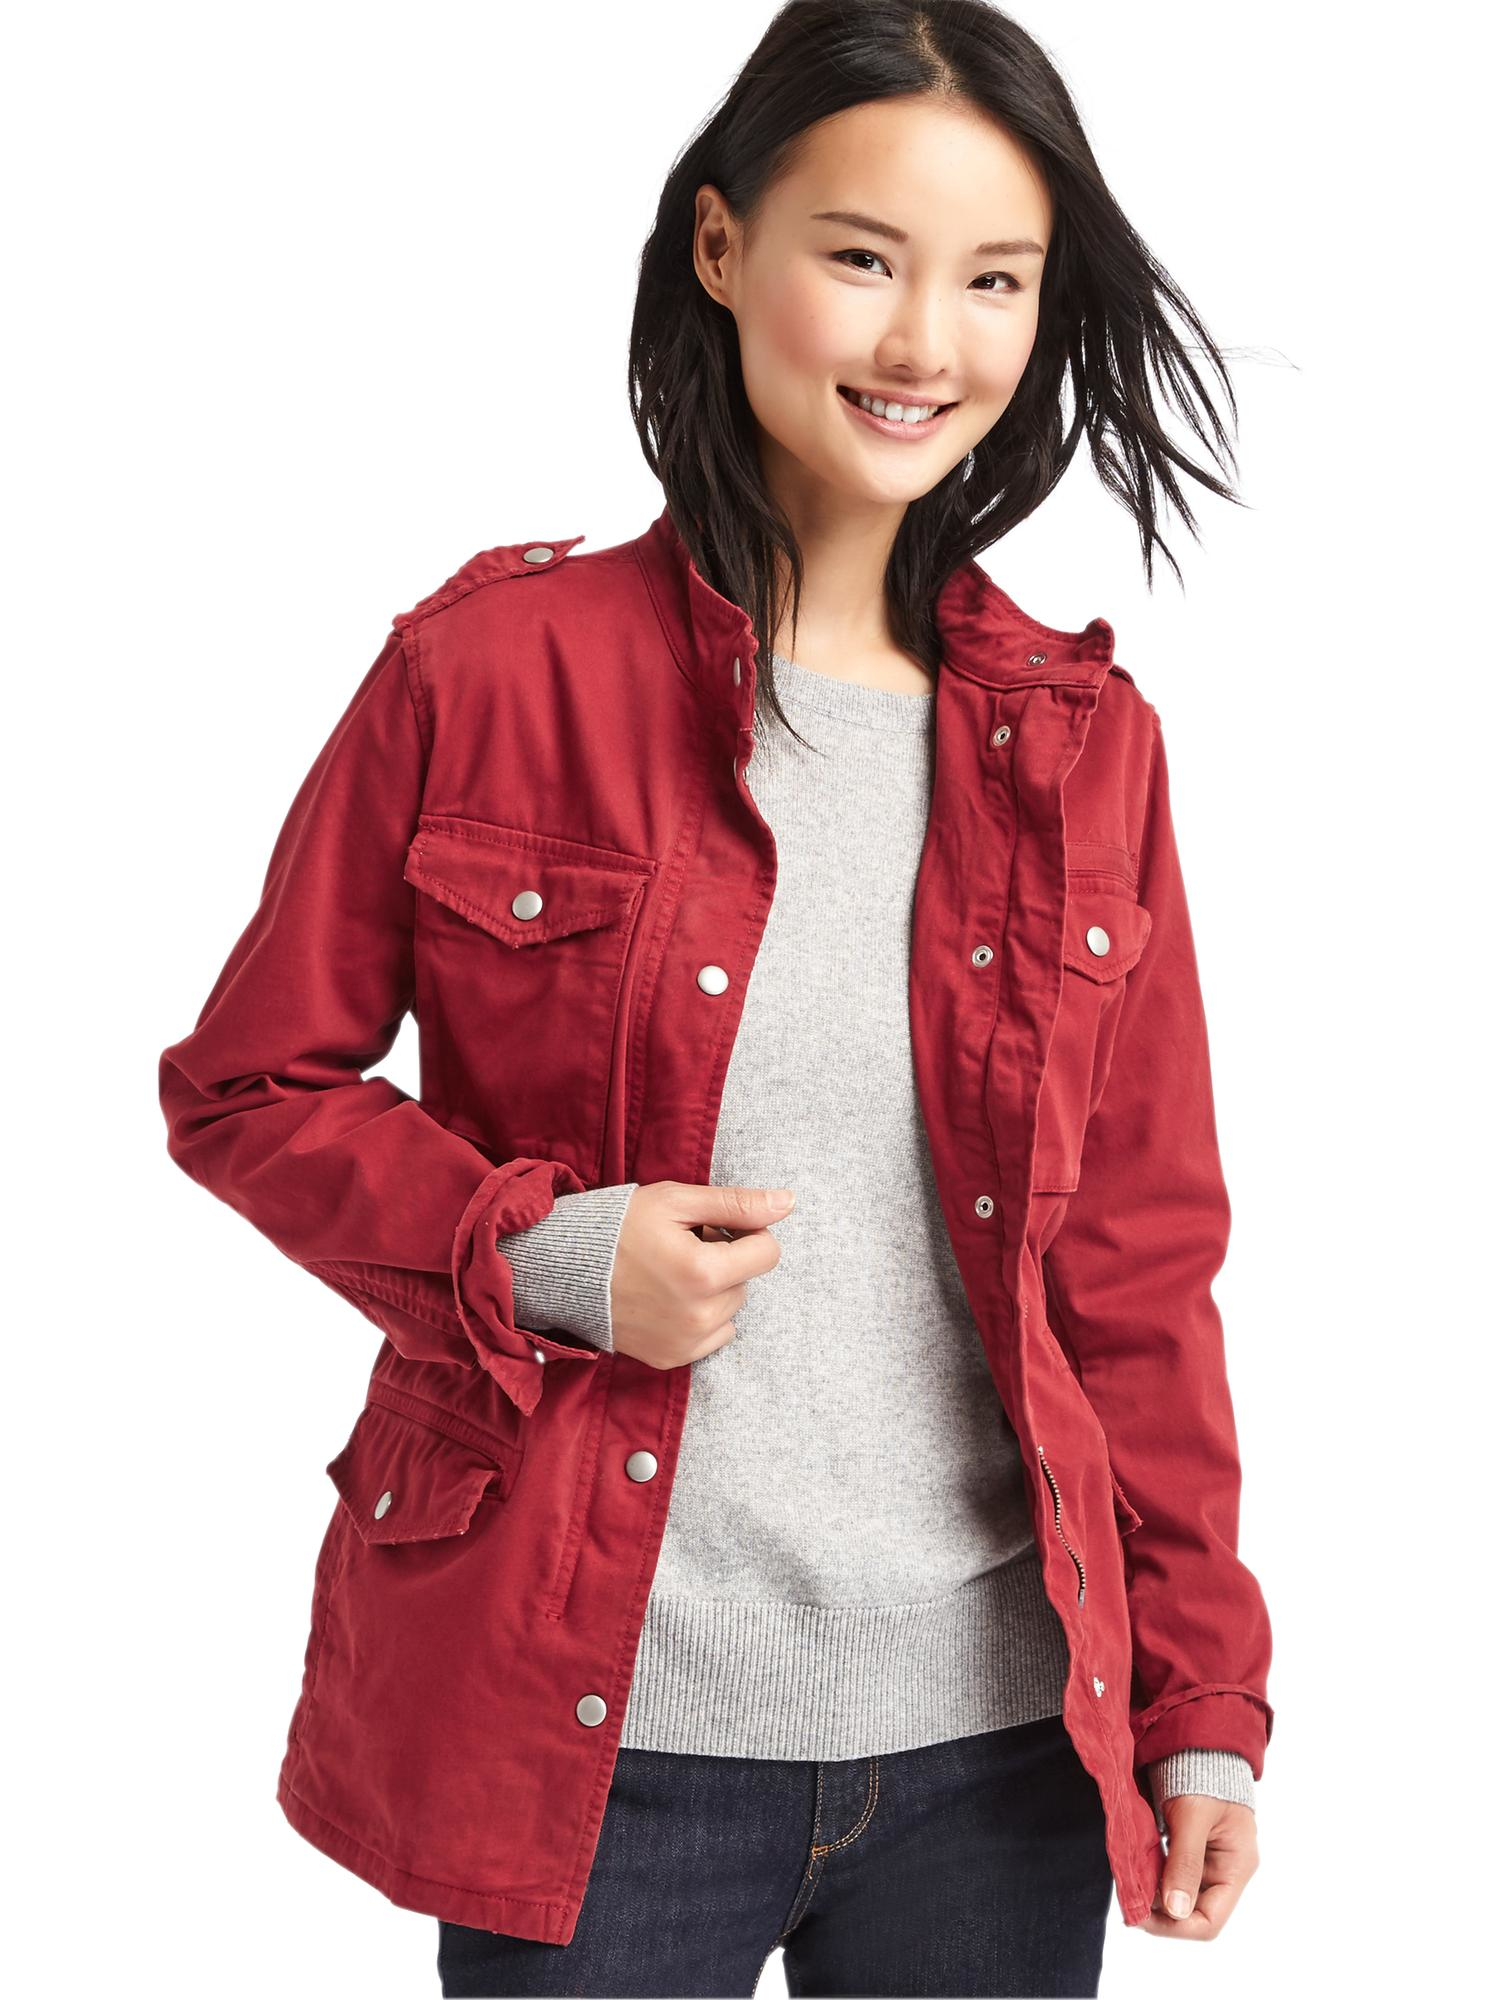 Gap Classic Utility Jacket in Red (CINNABAR RED)